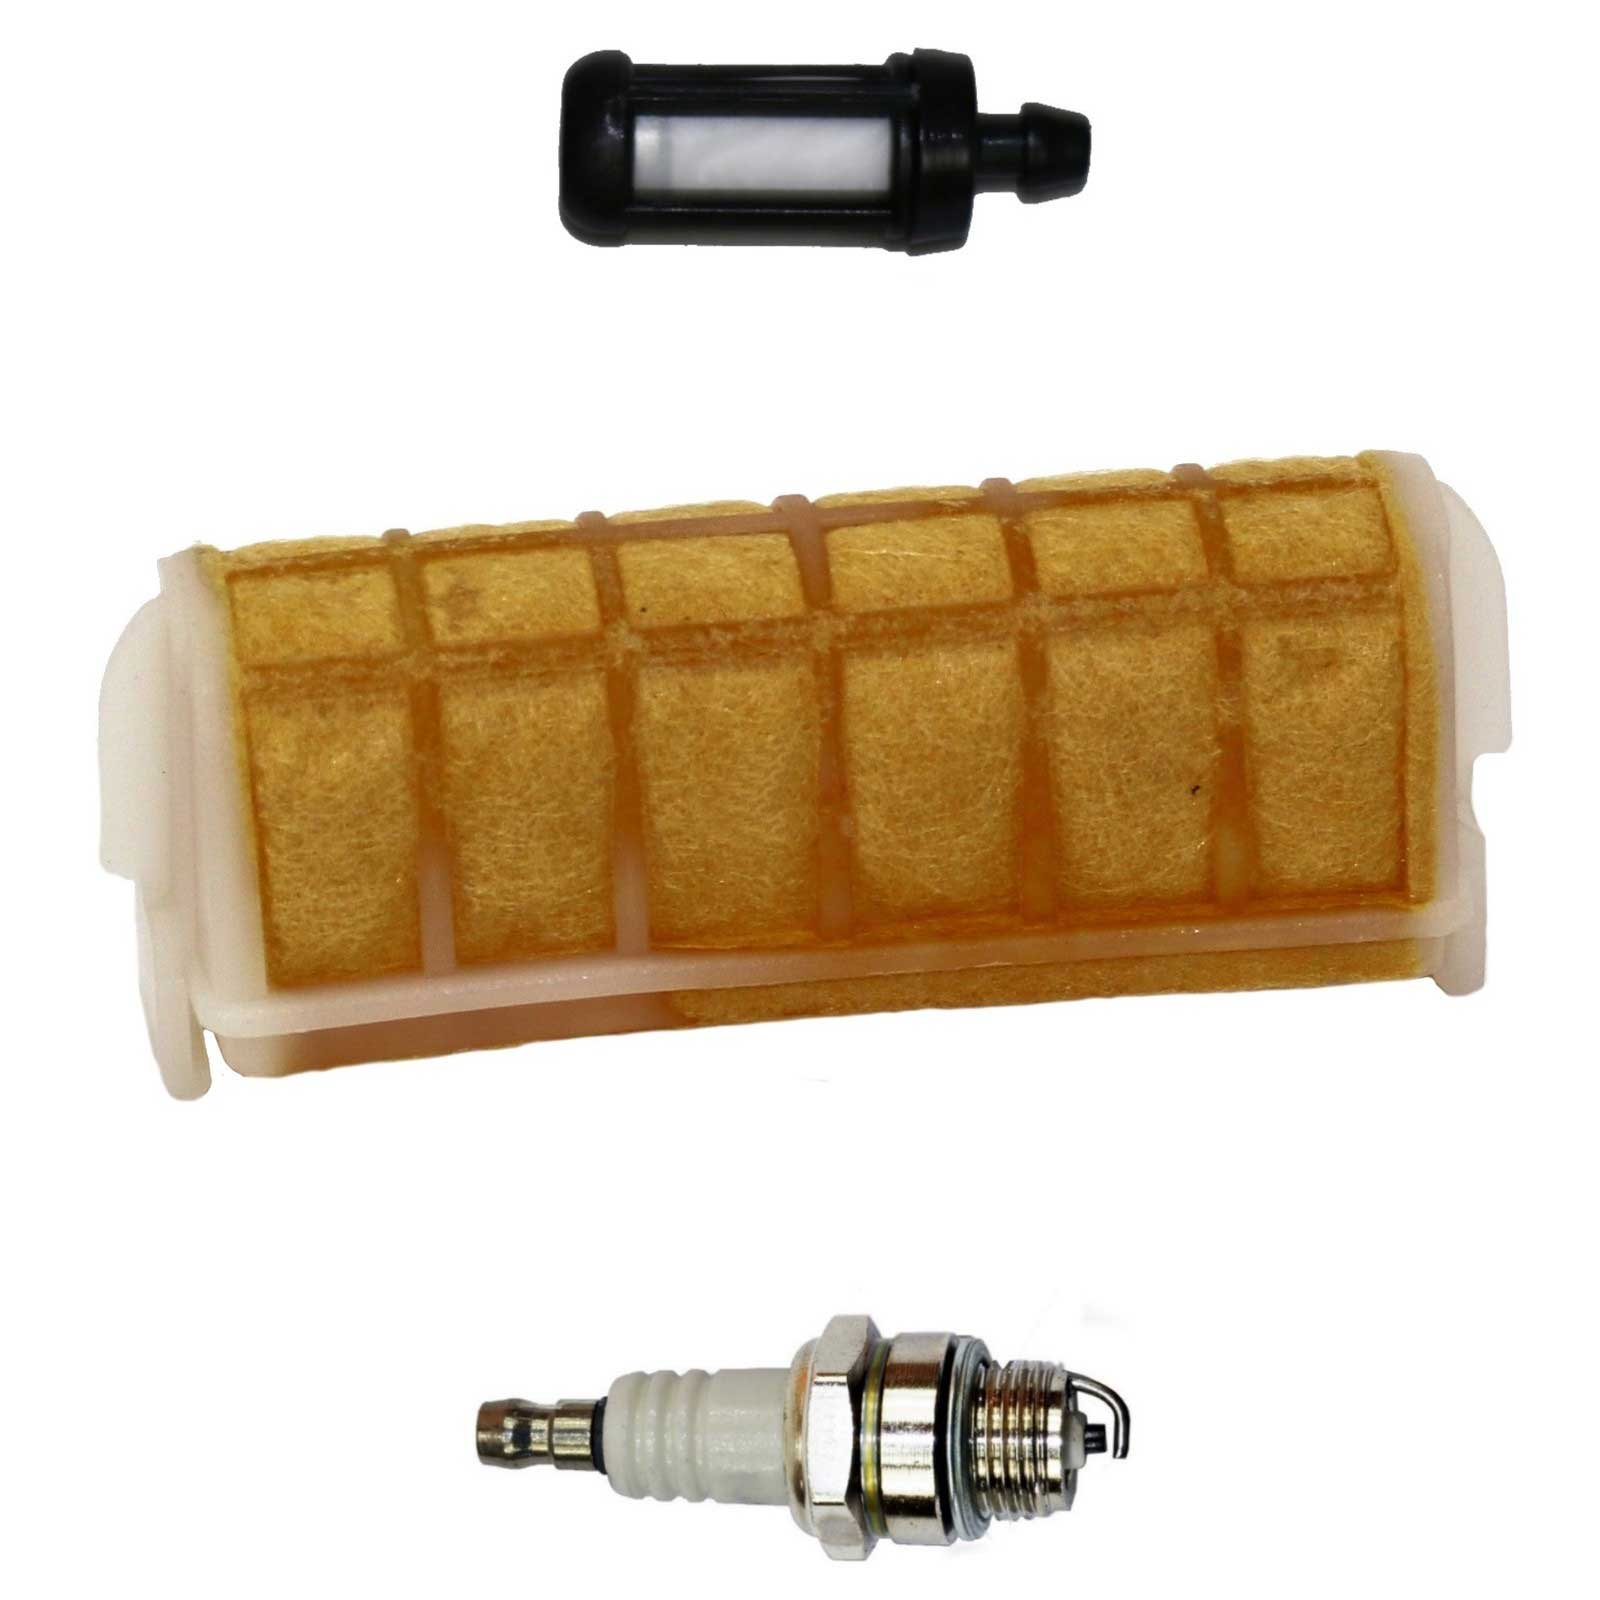 hight resolution of chainsaw service kit air fuel filter spark plug stihl 021 023 025 ms230 ms250